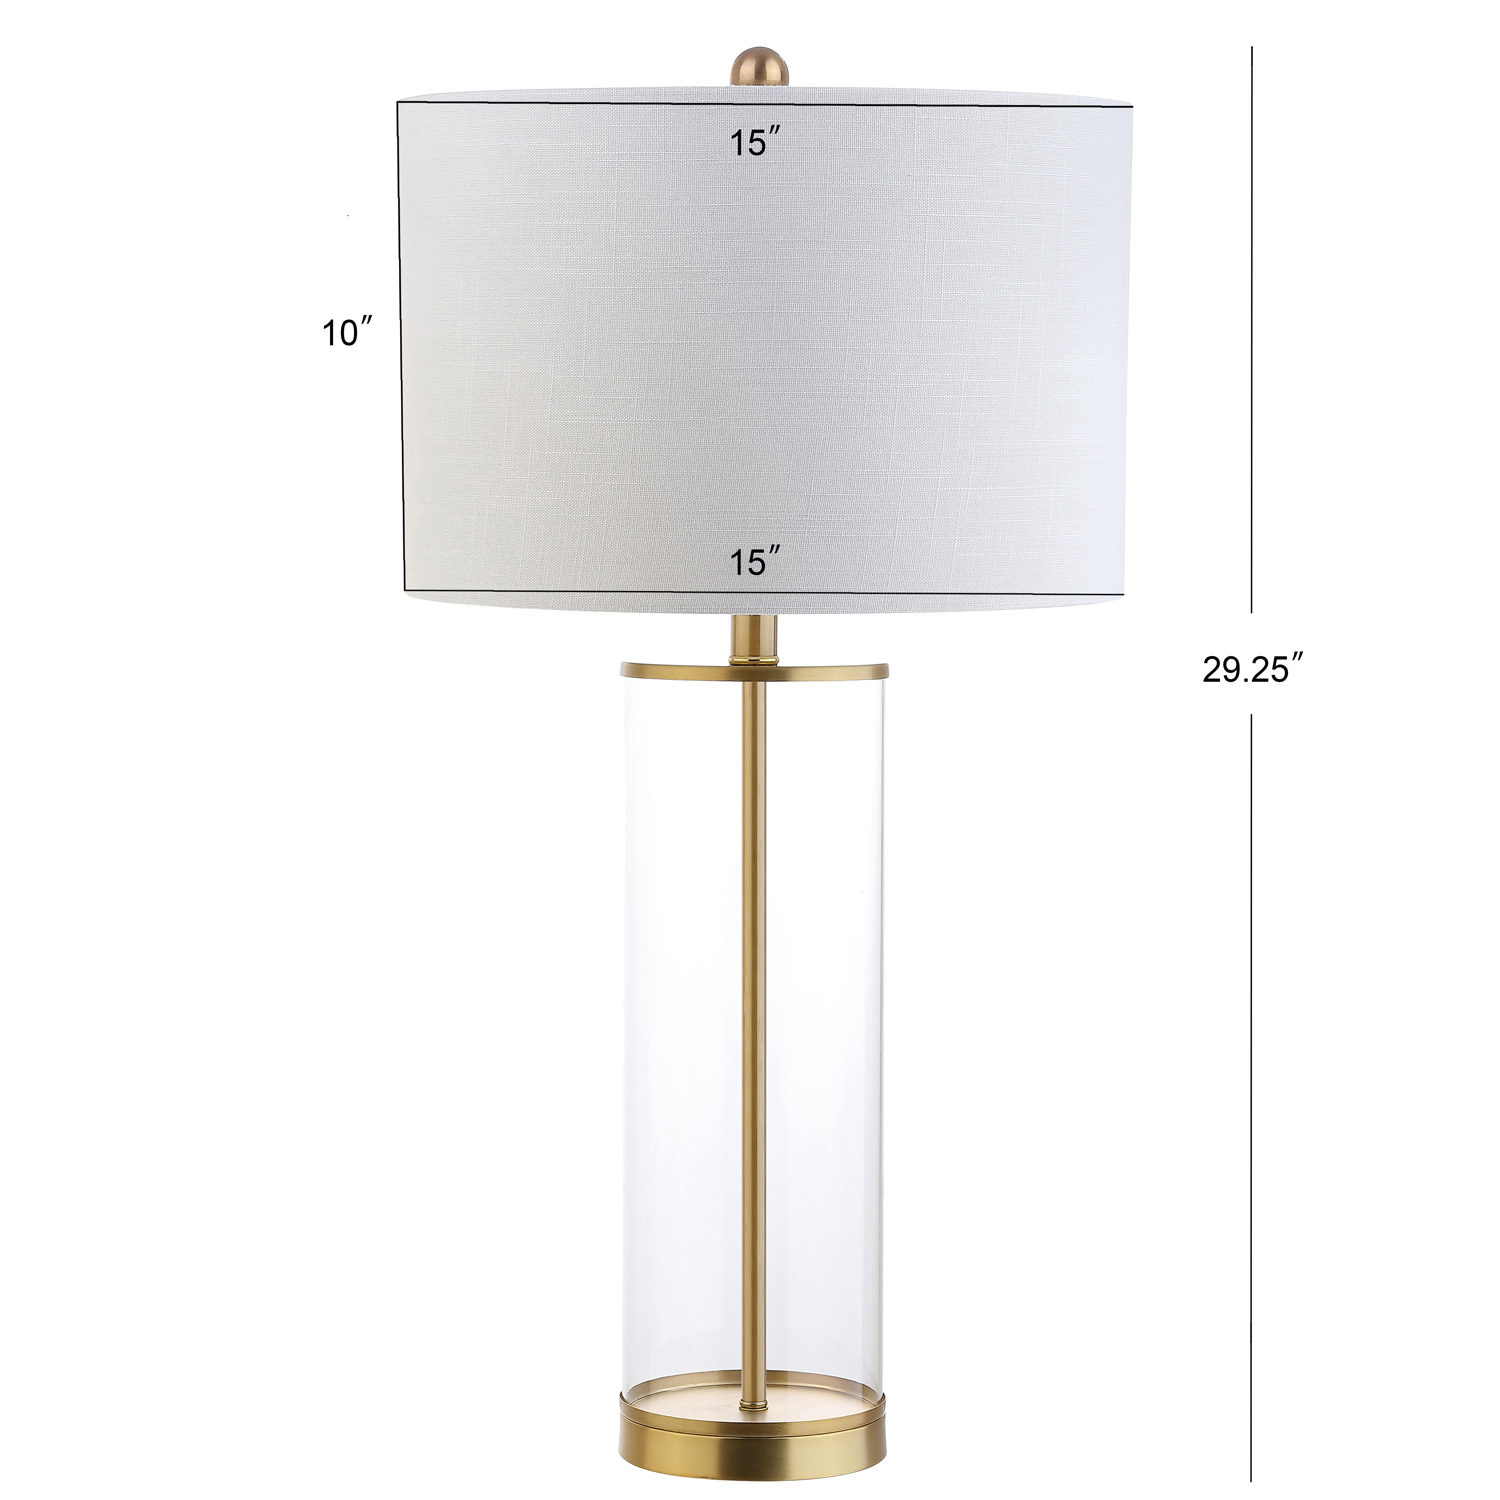 Translucent Cylinder Brass Table Lamp